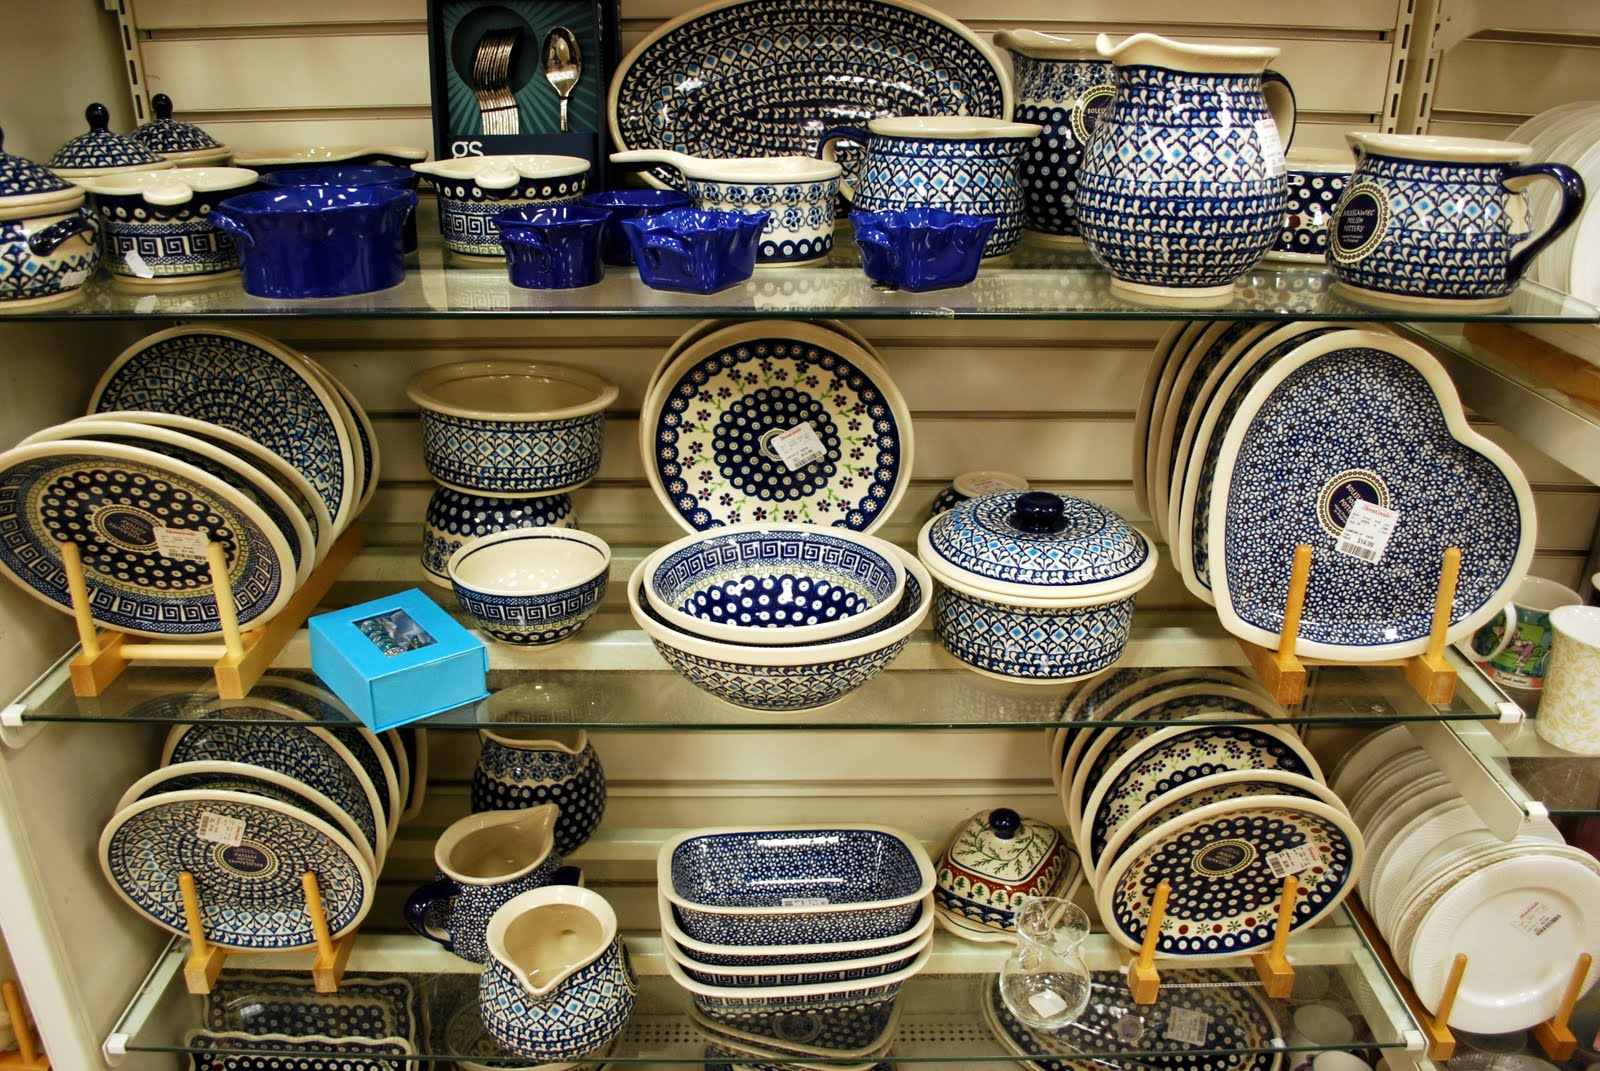 There are also isles and isles of year round goods and decorative  accessories in HomeGoods  such as this wonderful collection of unique folk  pottery made in. Mille Fiori Favoriti  HomeGoods for the Holidays